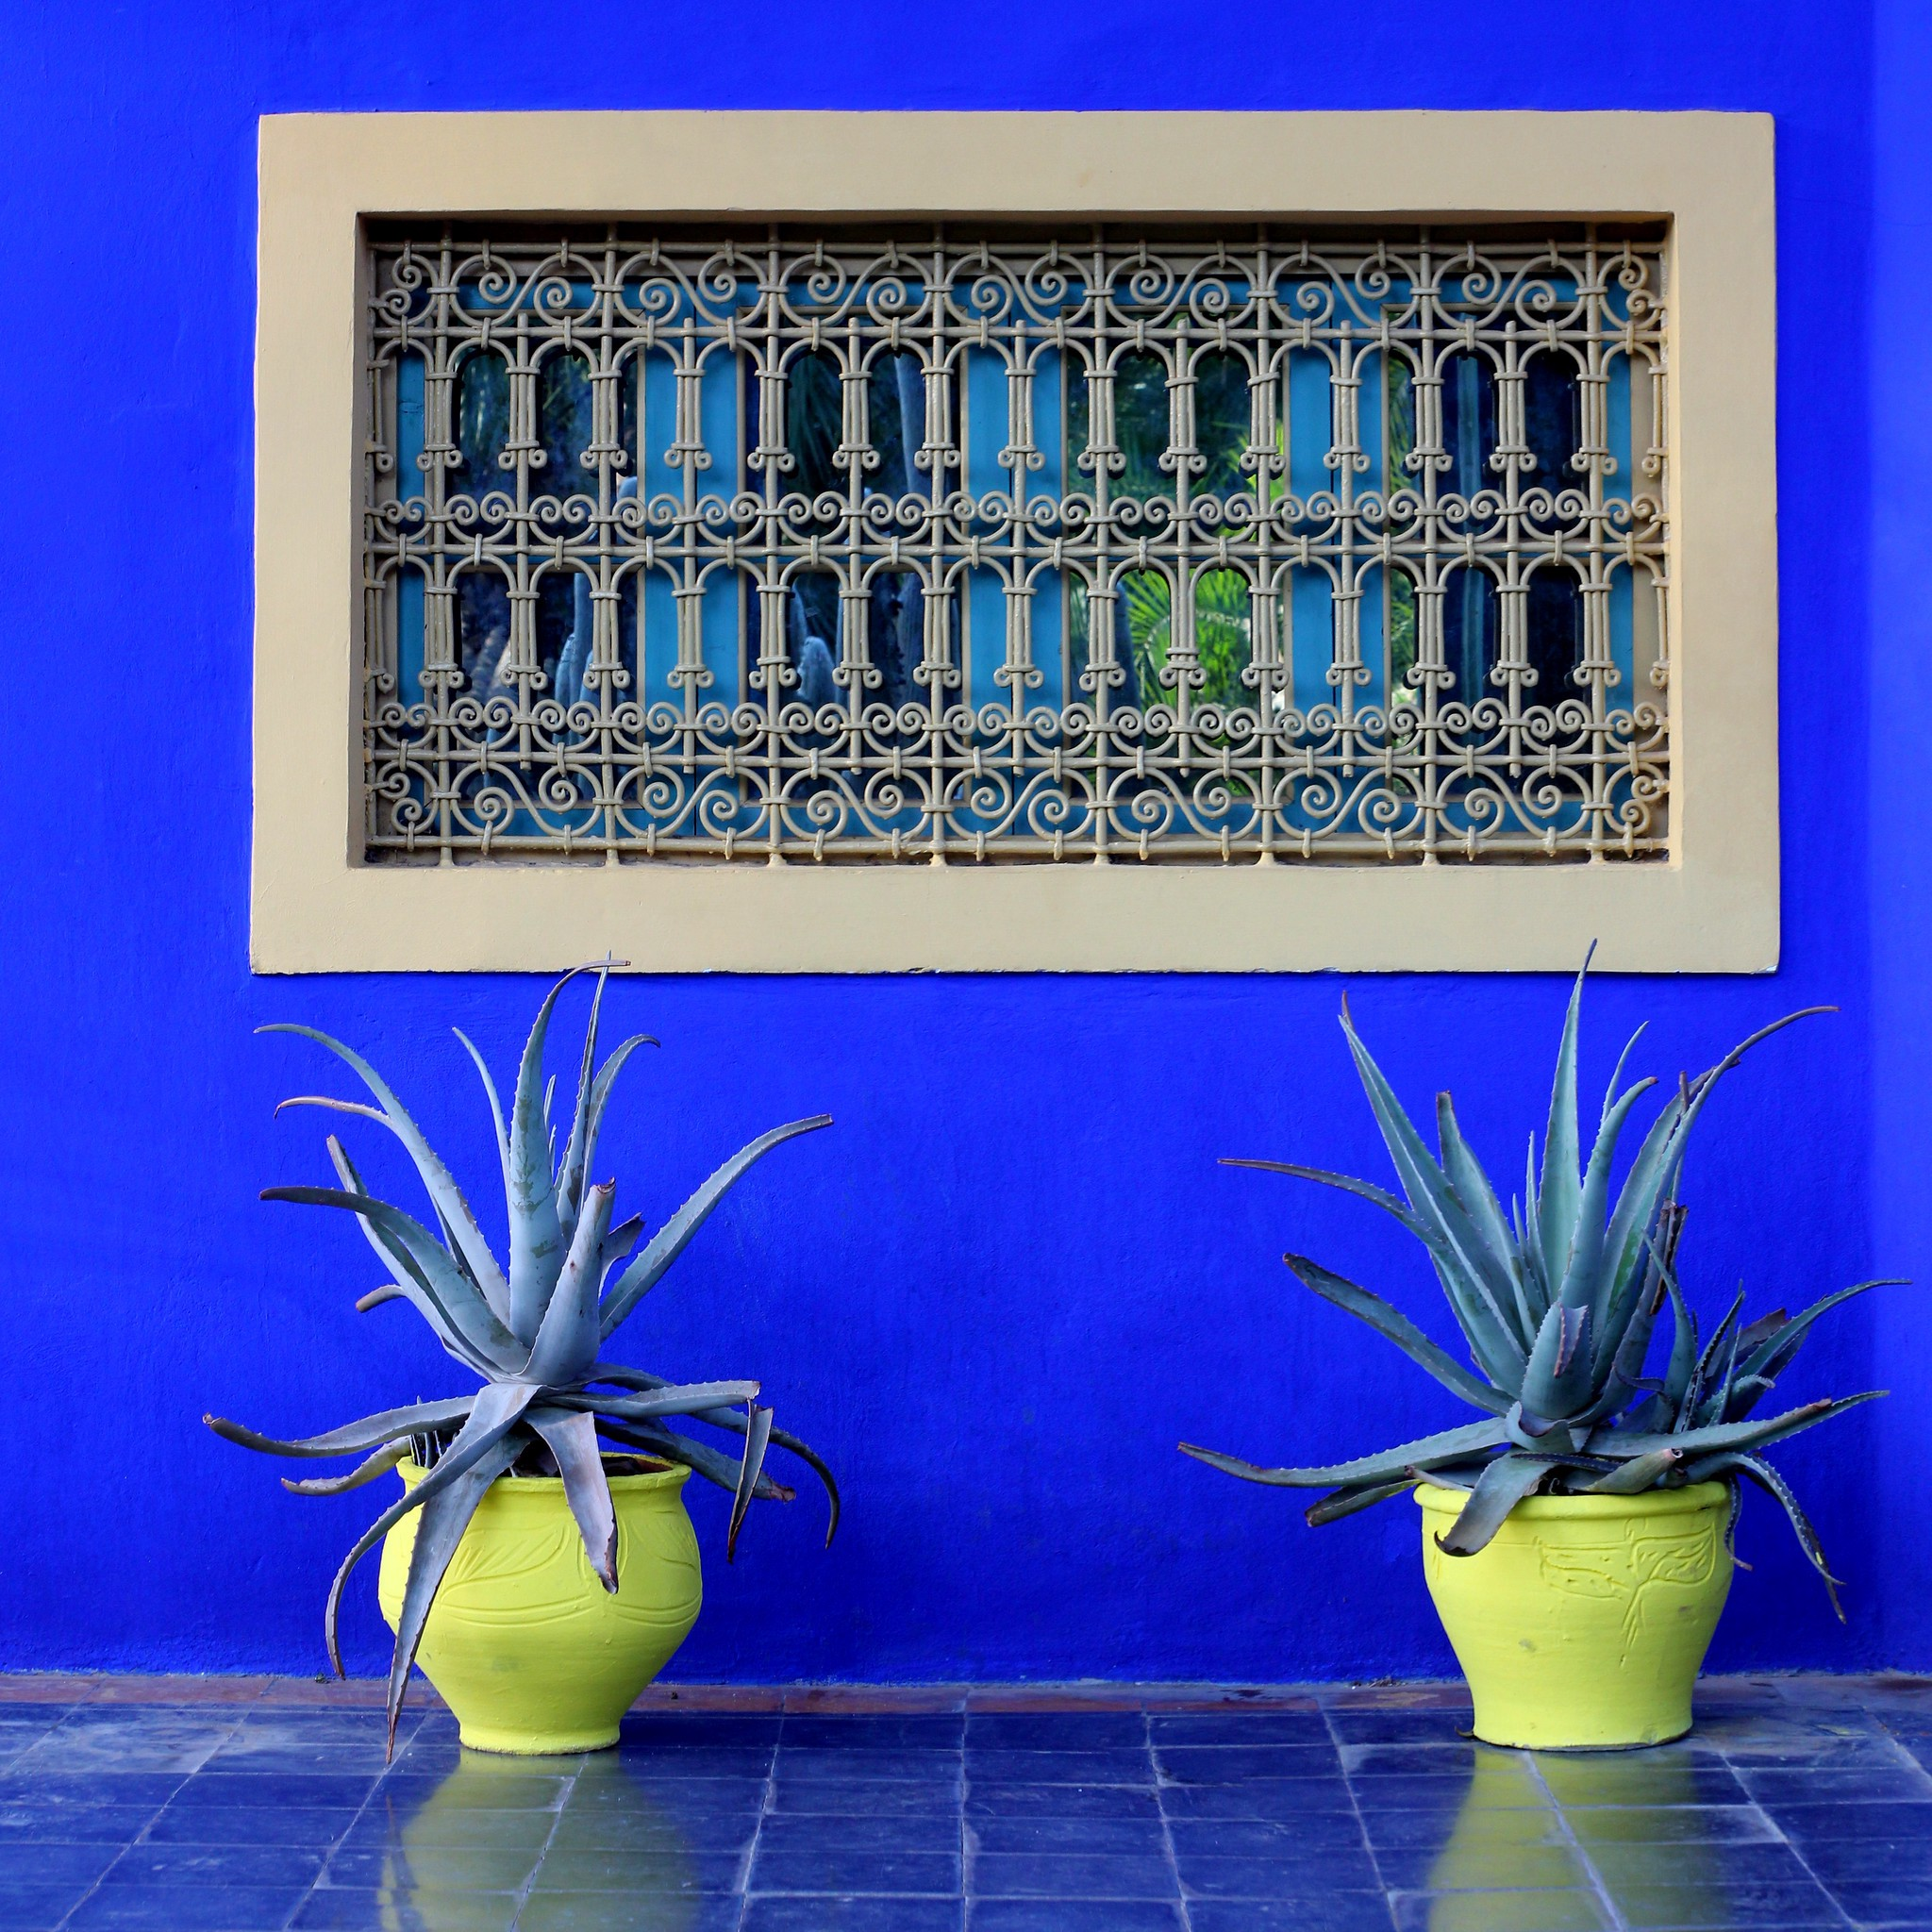 Bright blue colored wall with beige window and Aloe Vera plants in yellow flowerpots.